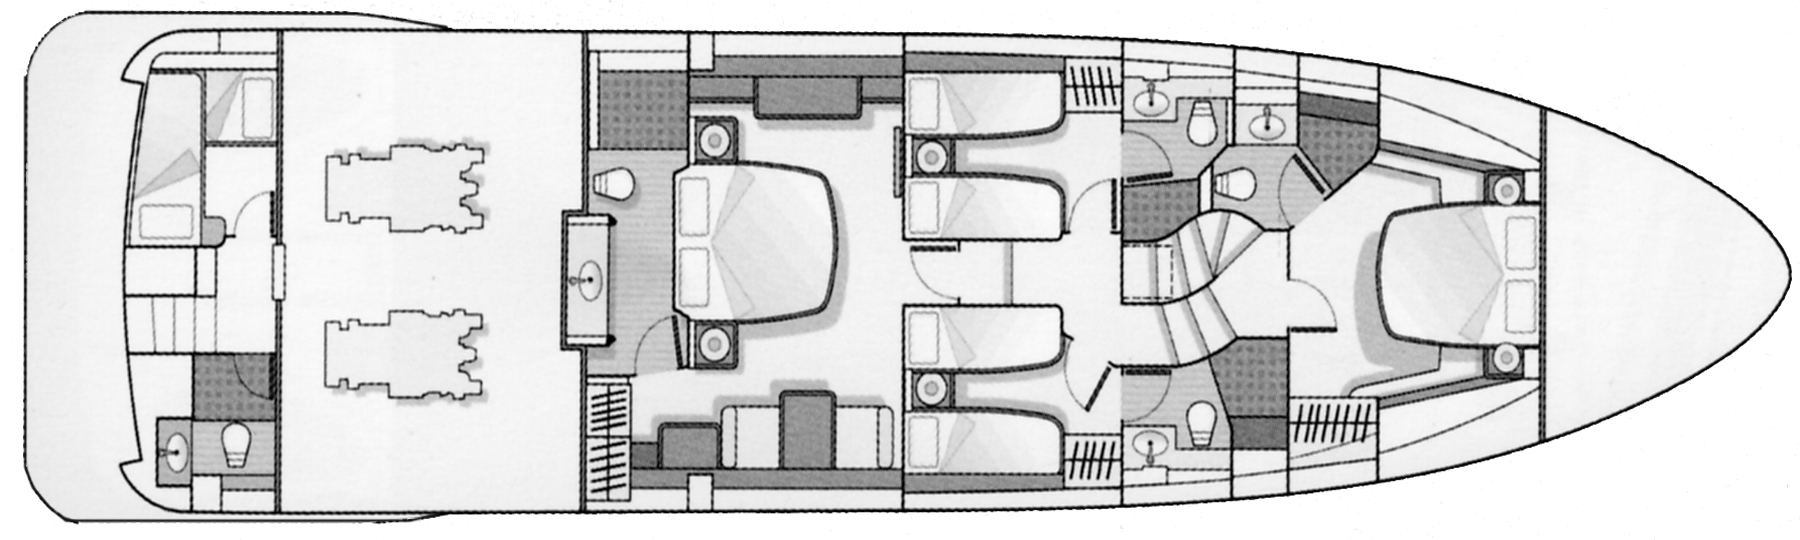 Azimut 75 Flybridge Floor Plan 2